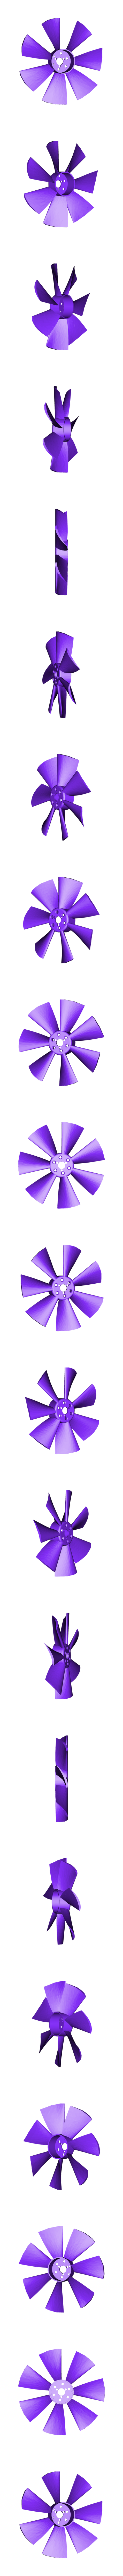 Purple land yacht. Propeller prop with